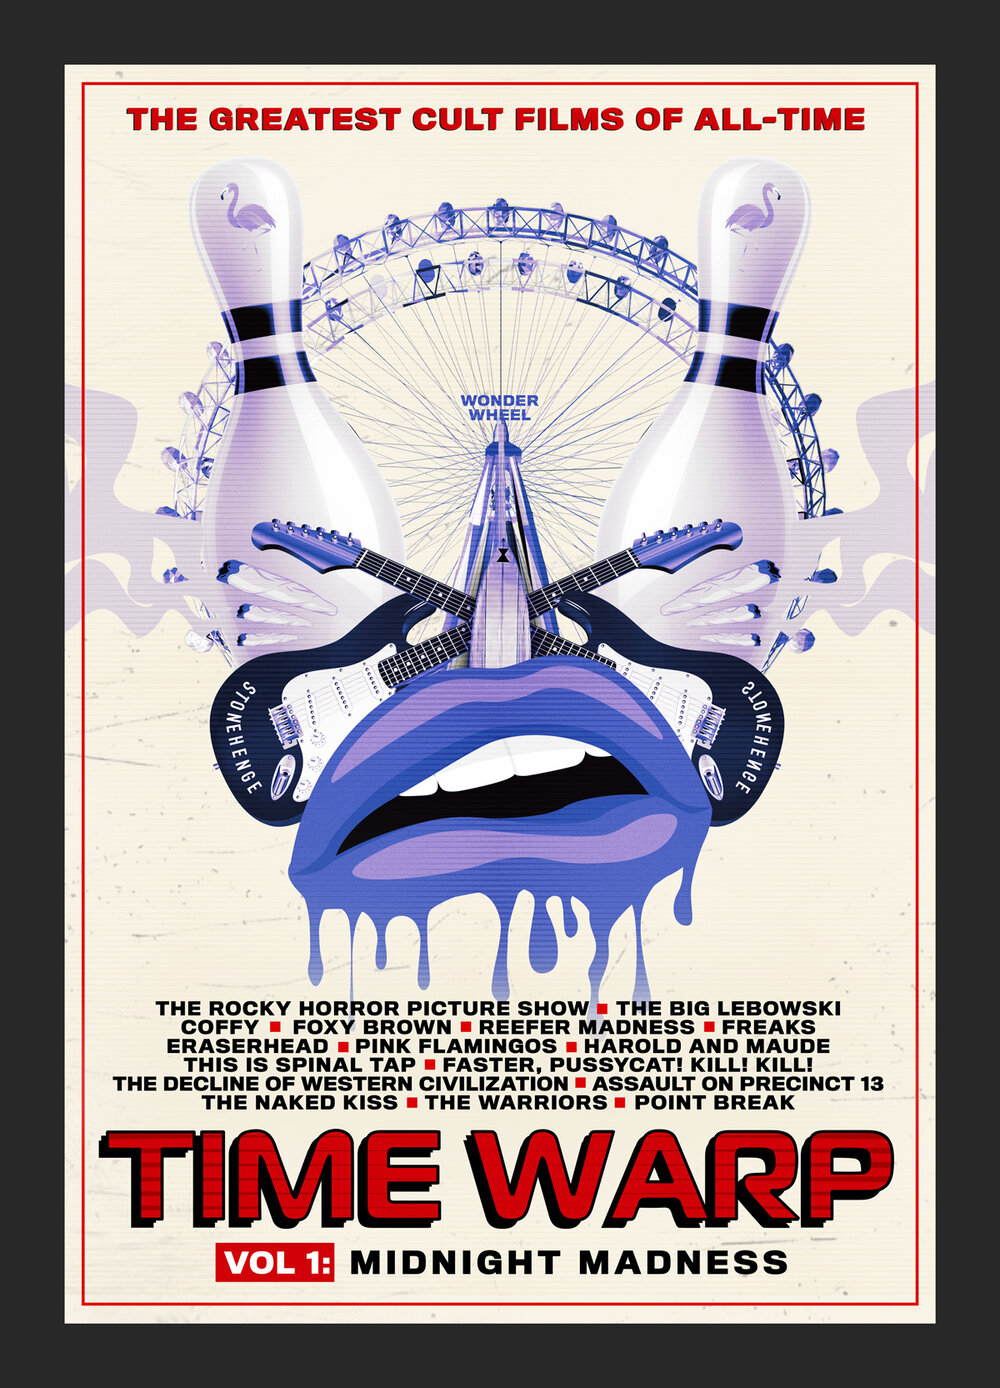 Time Warp: The Greatest Cult Films Of All-time- Vol. 3 Comedy And Camp